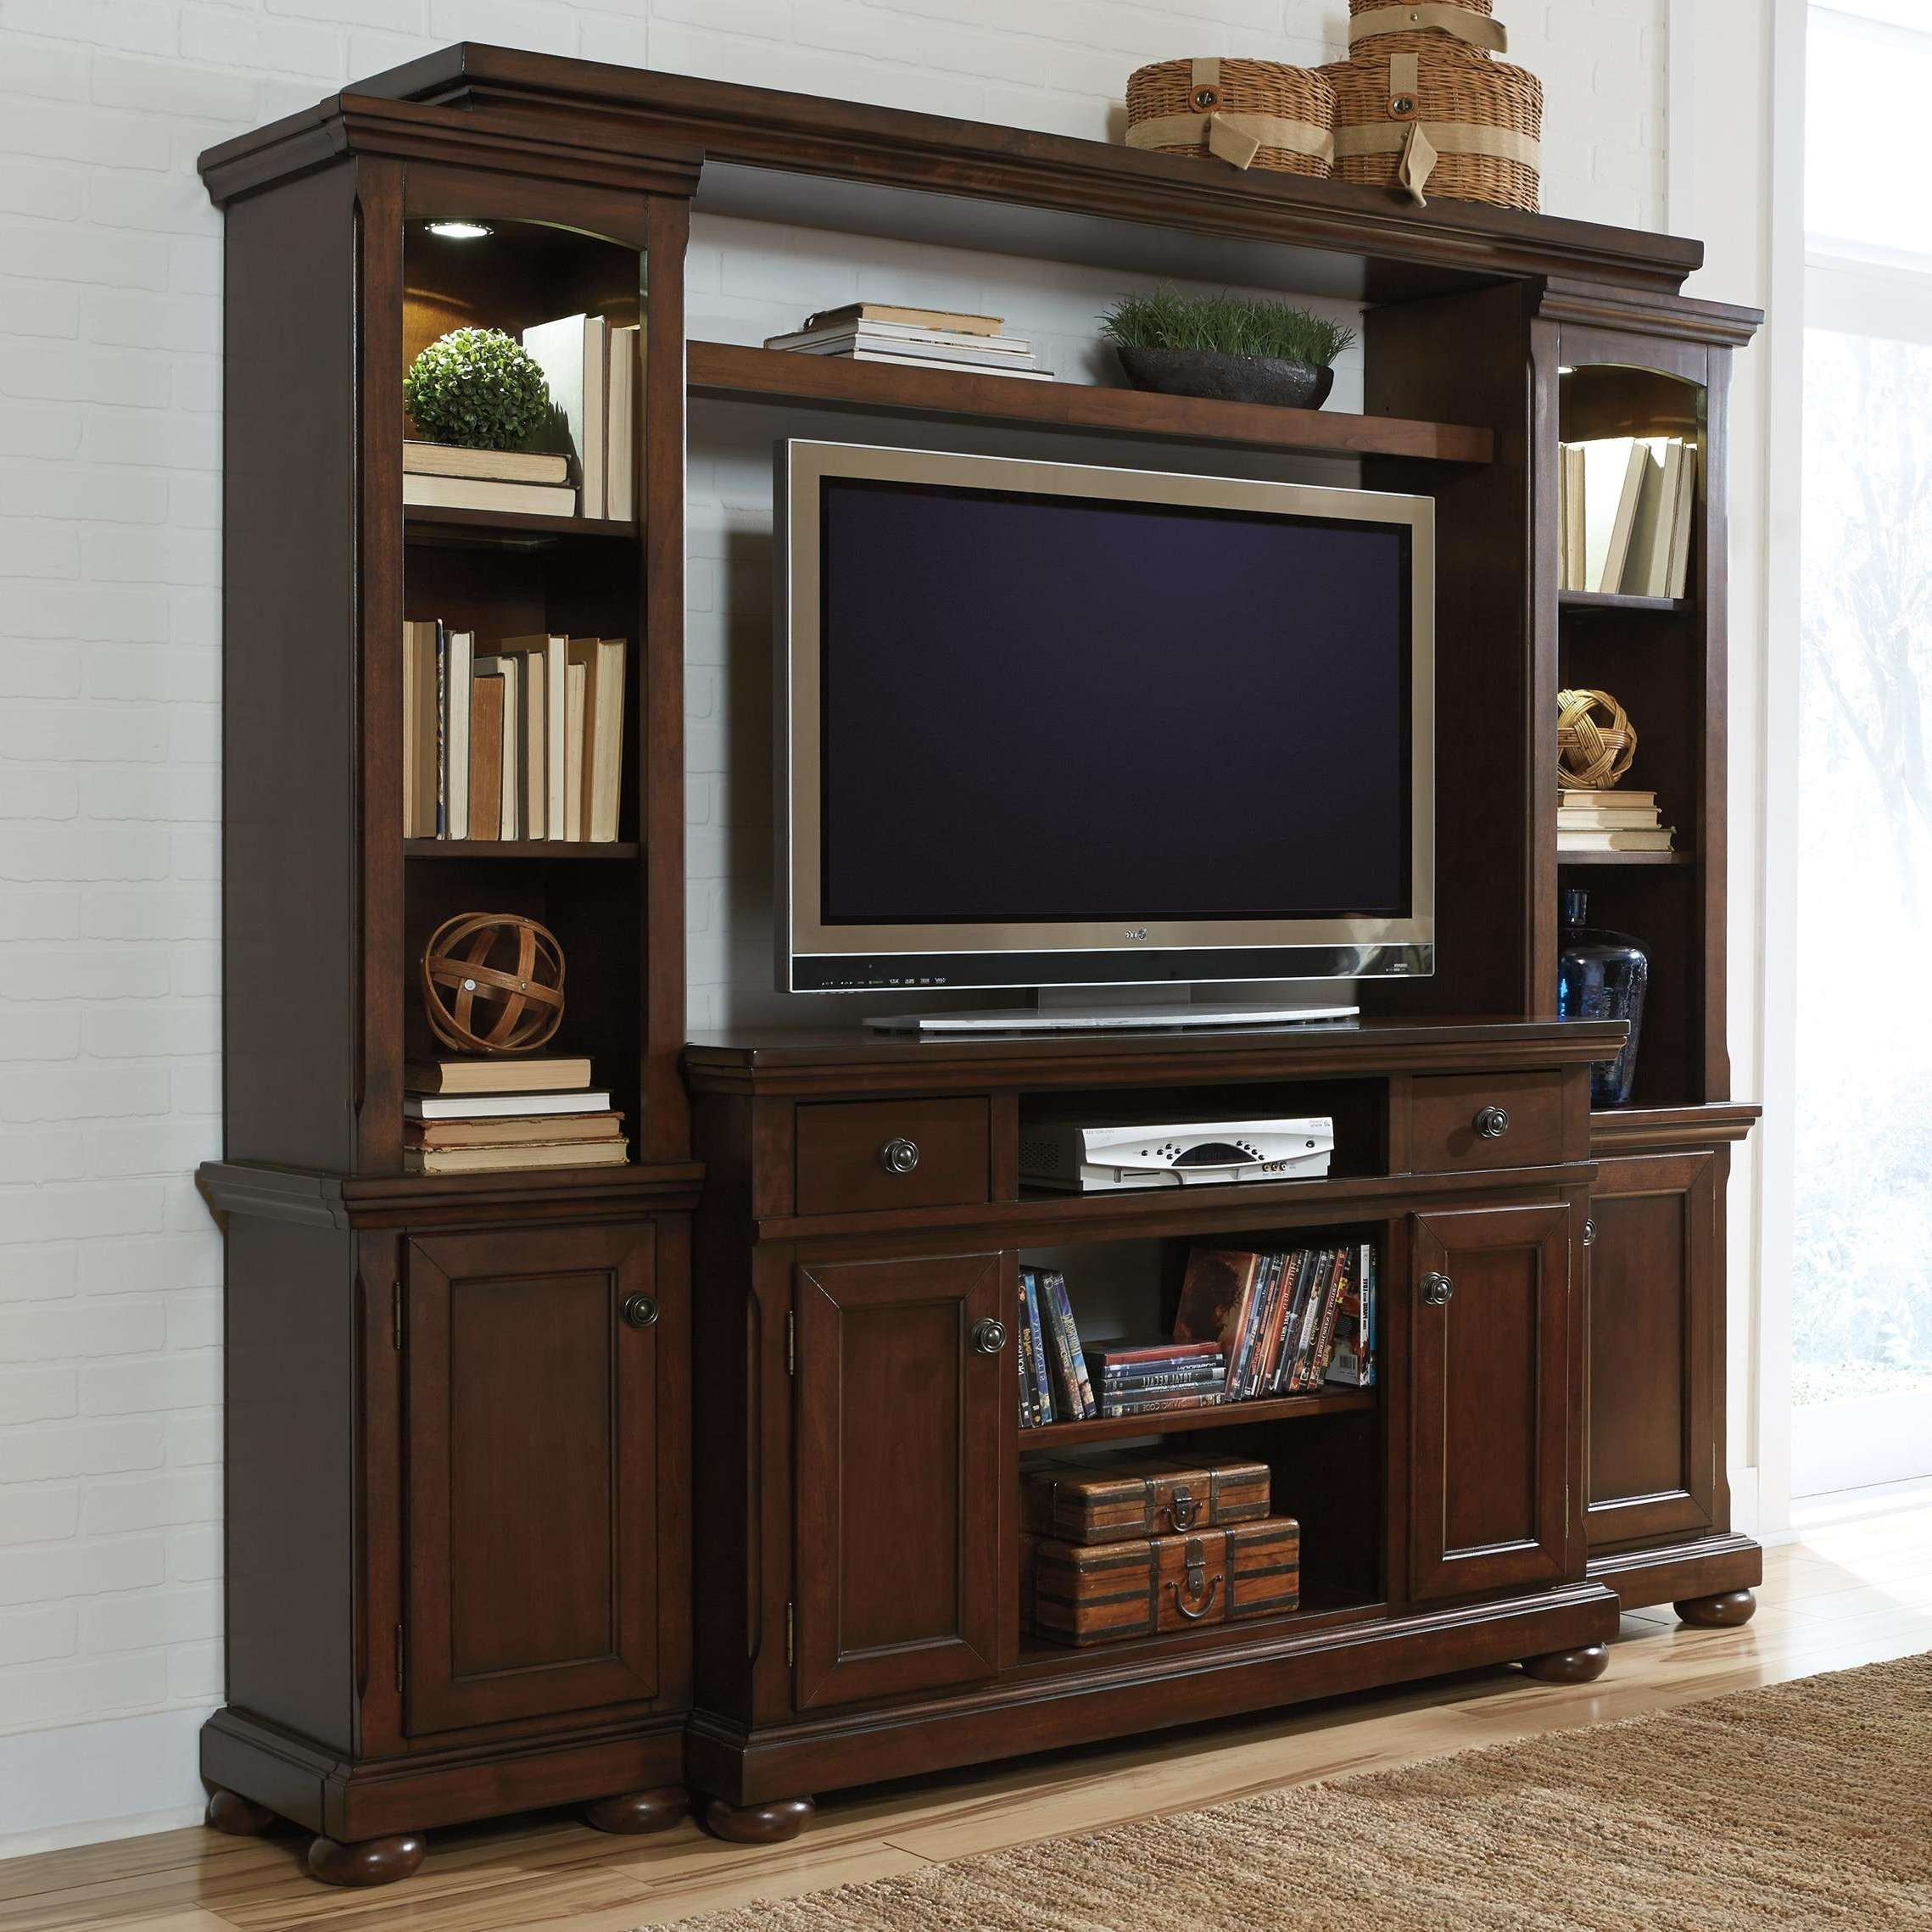 Porter Entertainment Wall Unit W/ Tv Stand, Bridge, And Piers For Large Tv Cabinets (View 5 of 20)